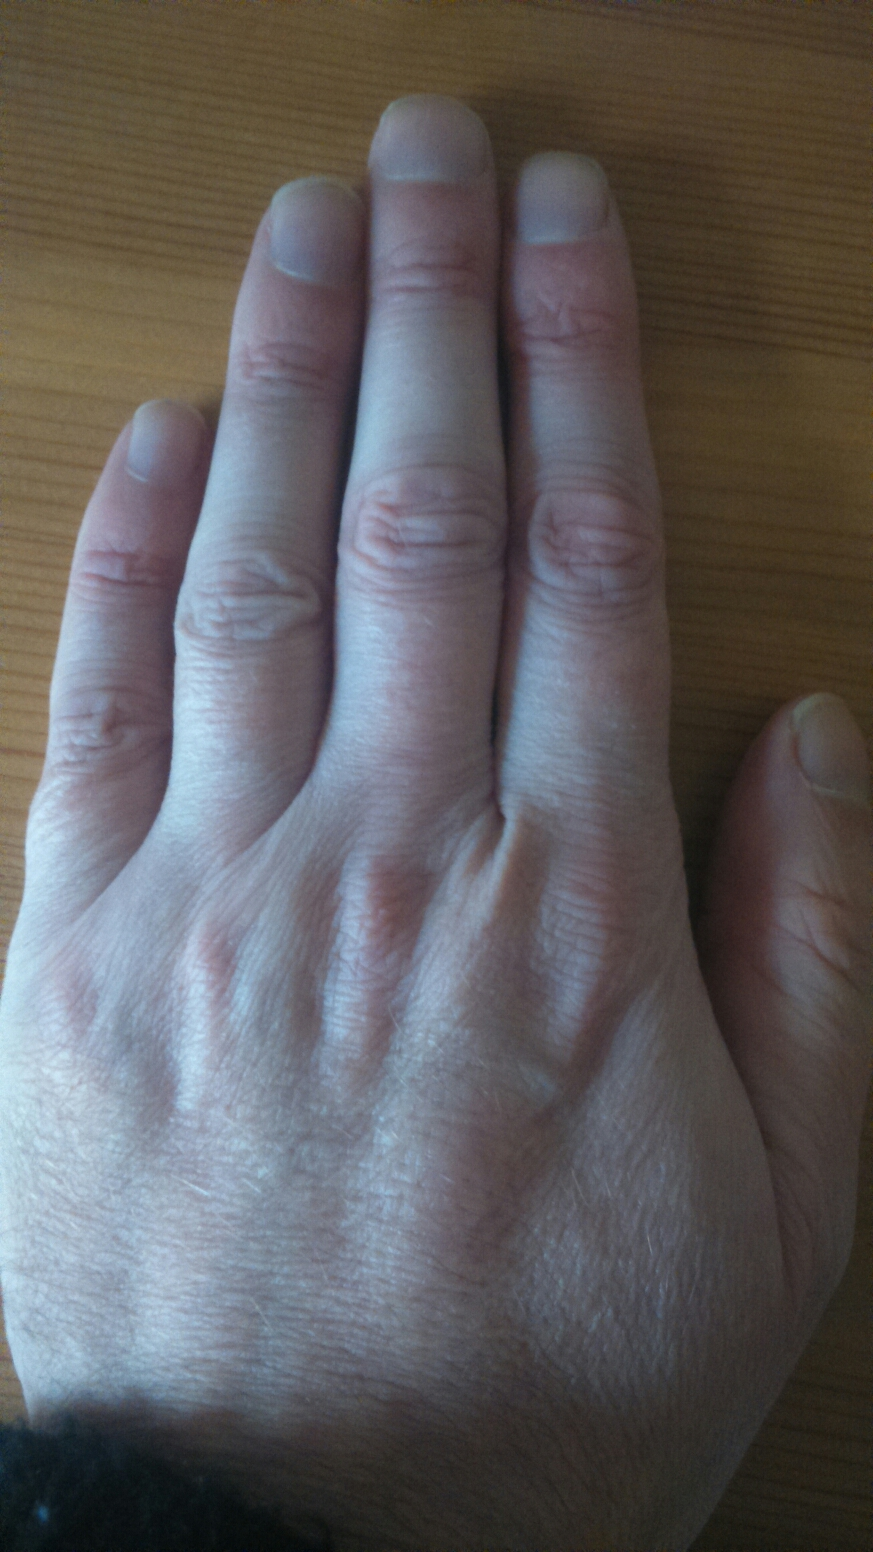 Length of fingers homosexuality statistics